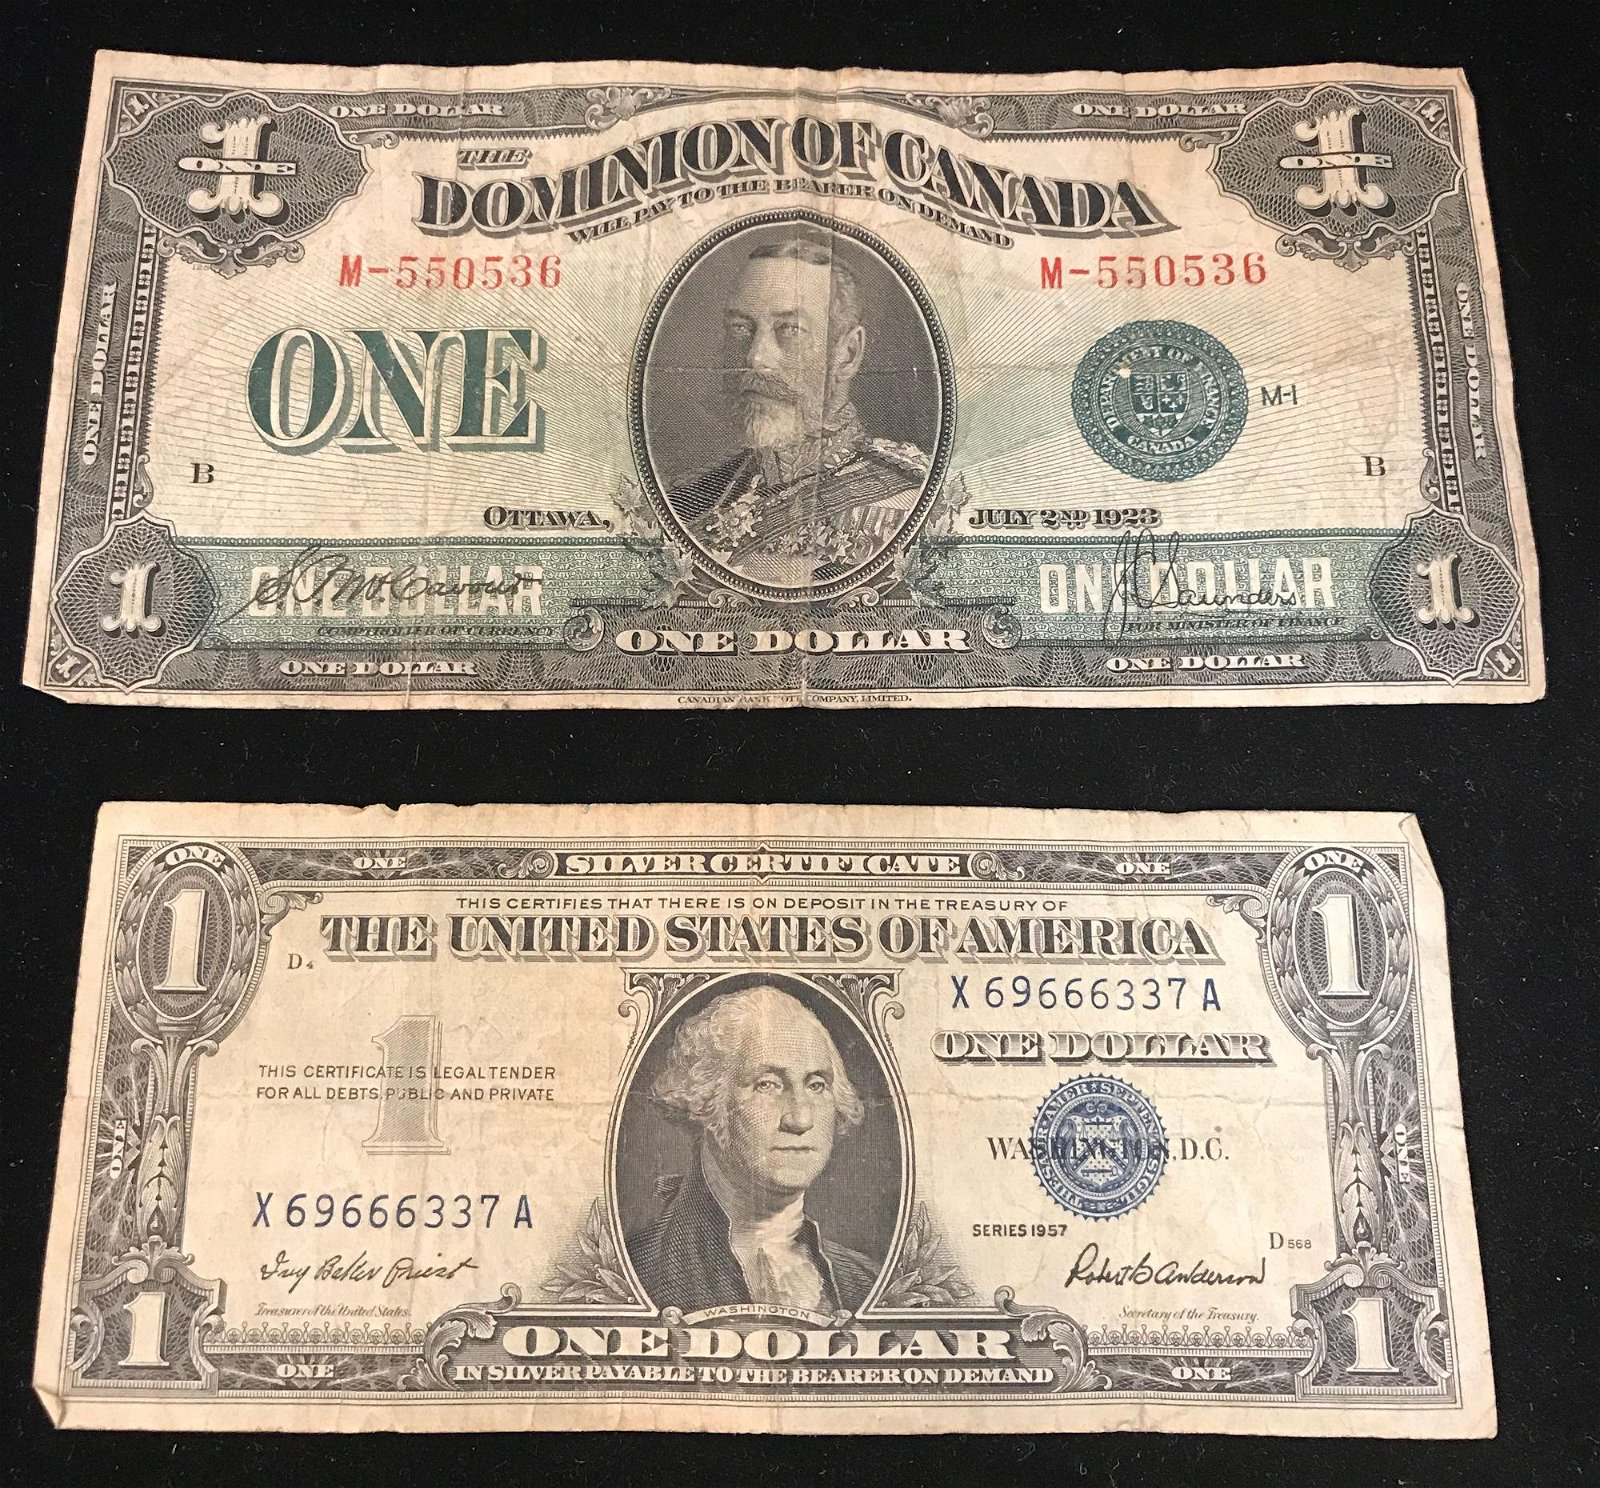 SERIES 1923 CANADIAN ONE DOLLAR BANK NOTE AND SERIES